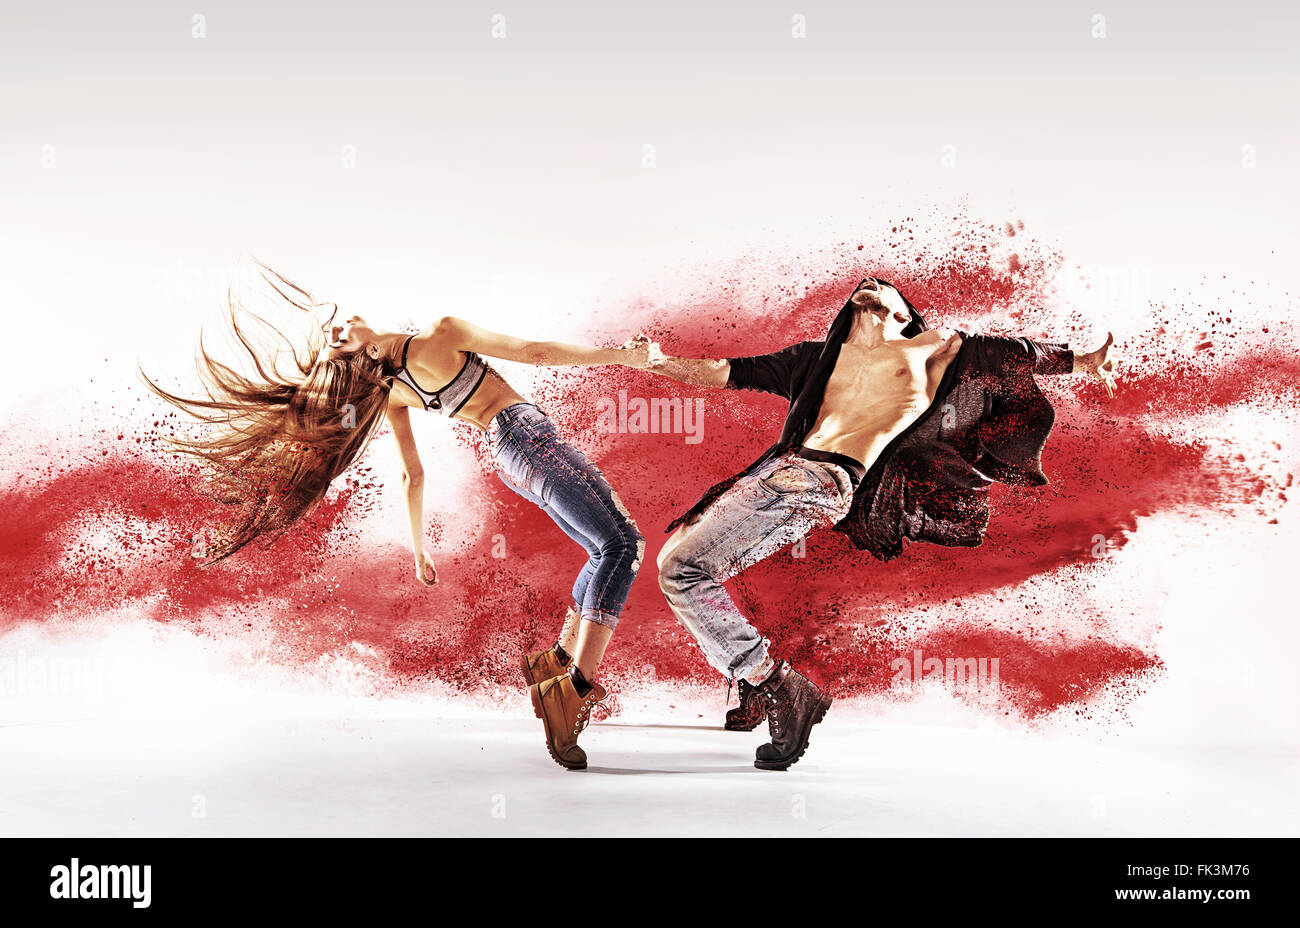 Talented young dancers sprinkling red sand - Stock Image